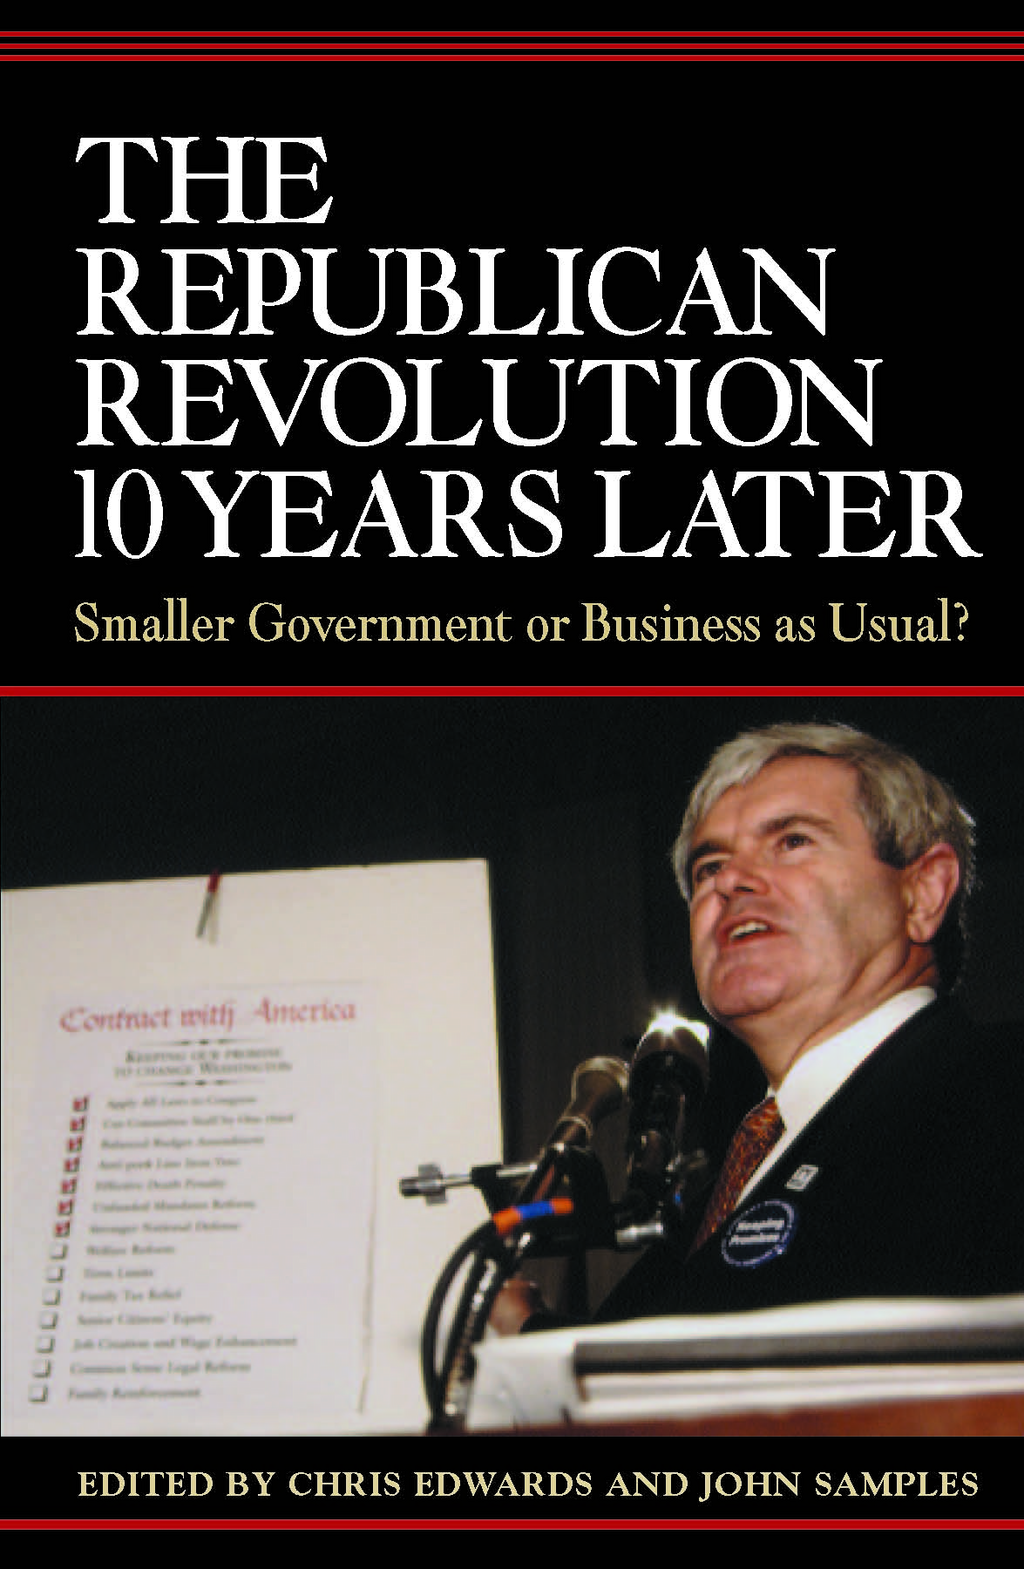 The Republican Revolution 10 Years Later: Smaller Government or Business as Usual?